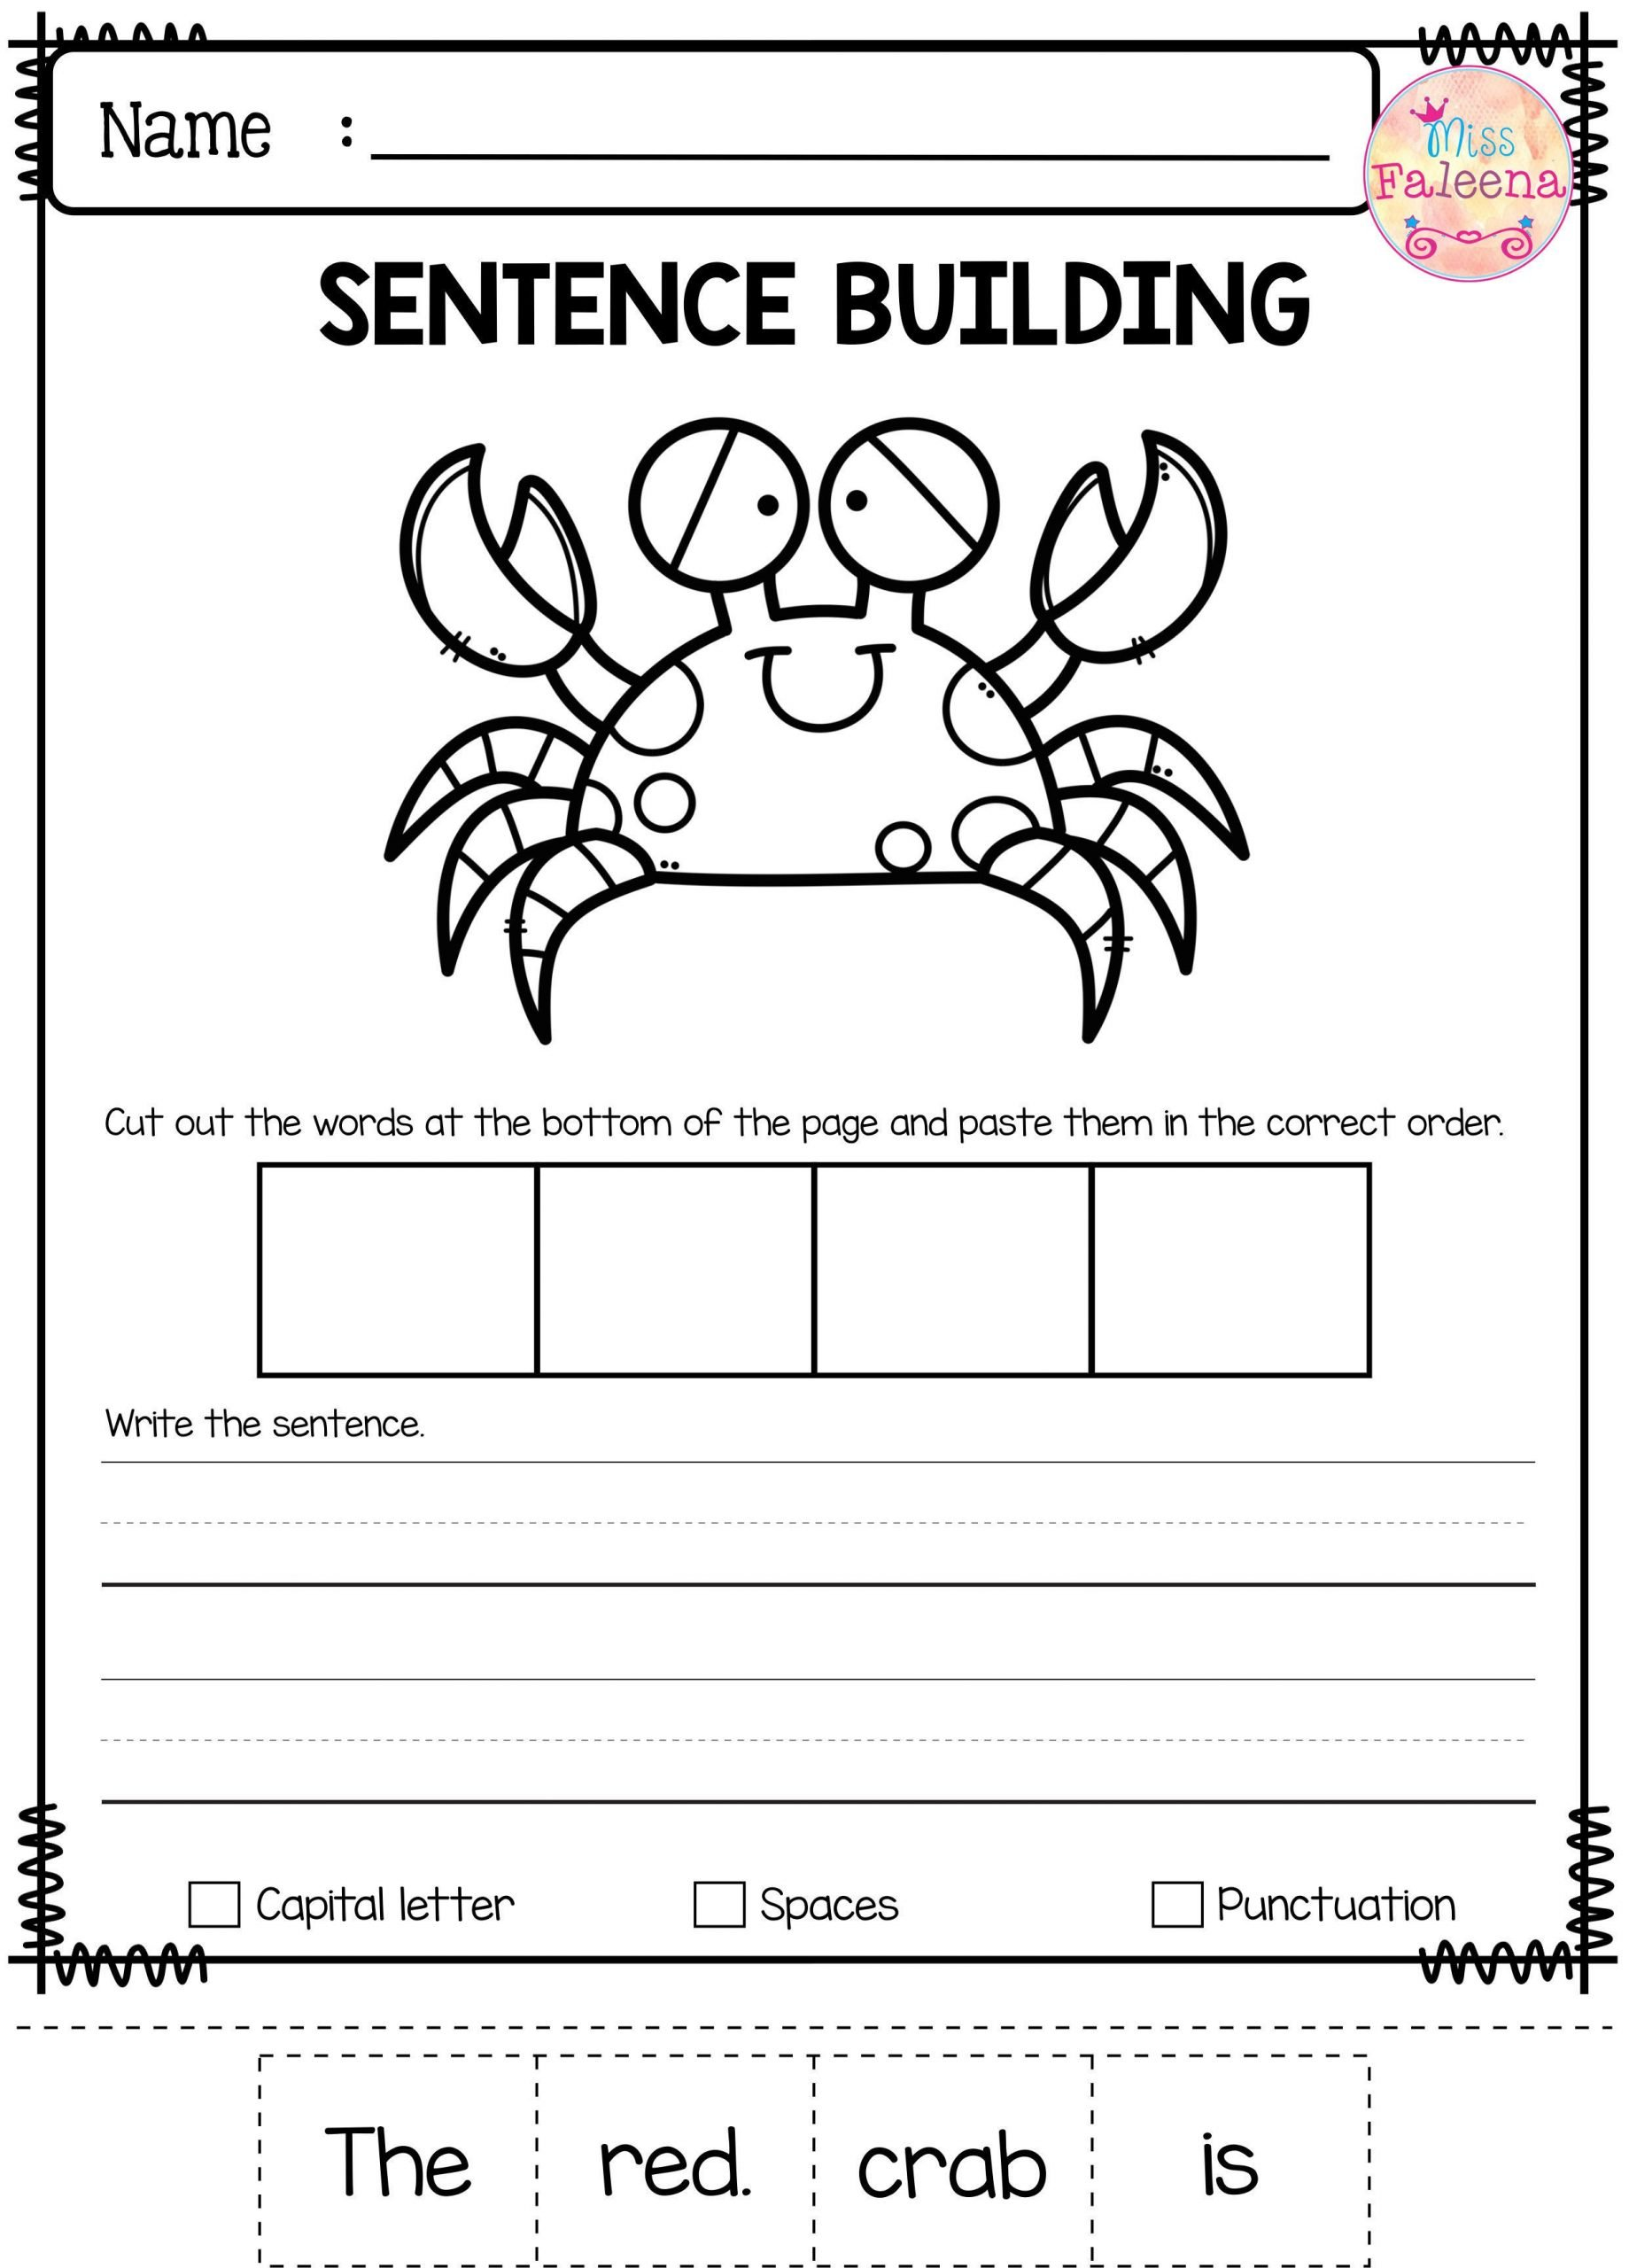 Free Sentence Structure Worksheets Free Sentence Building